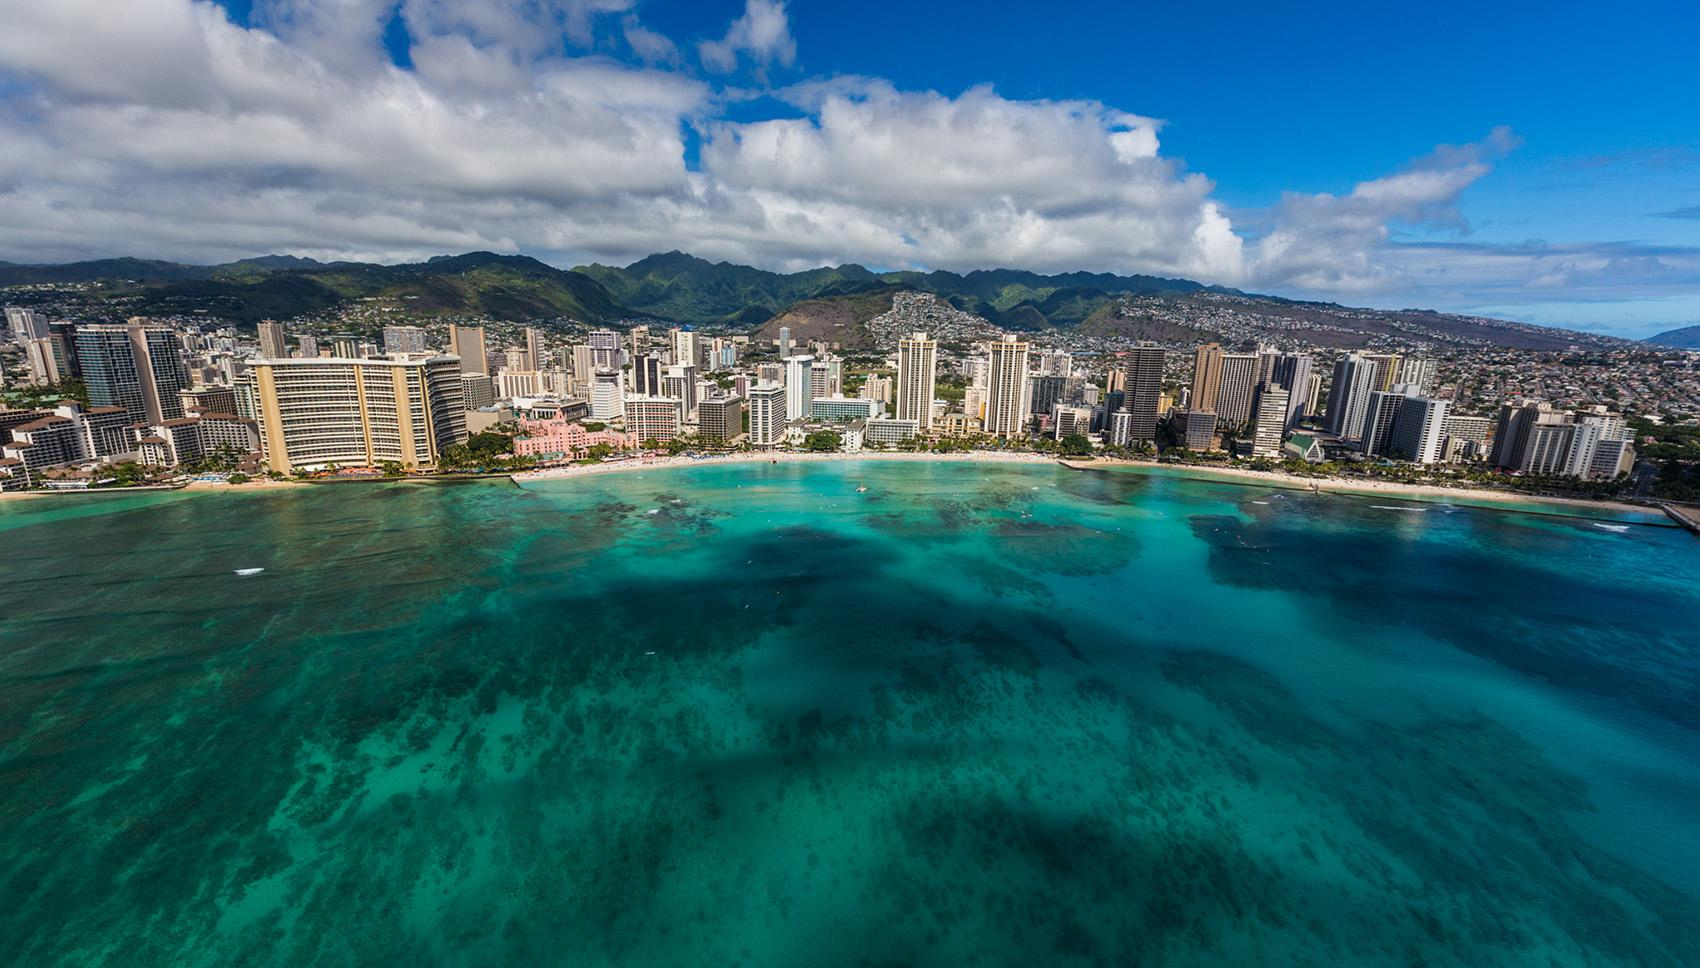 Oahu Vacation Rentals: Beachfront Home & Luxury Rentals ...